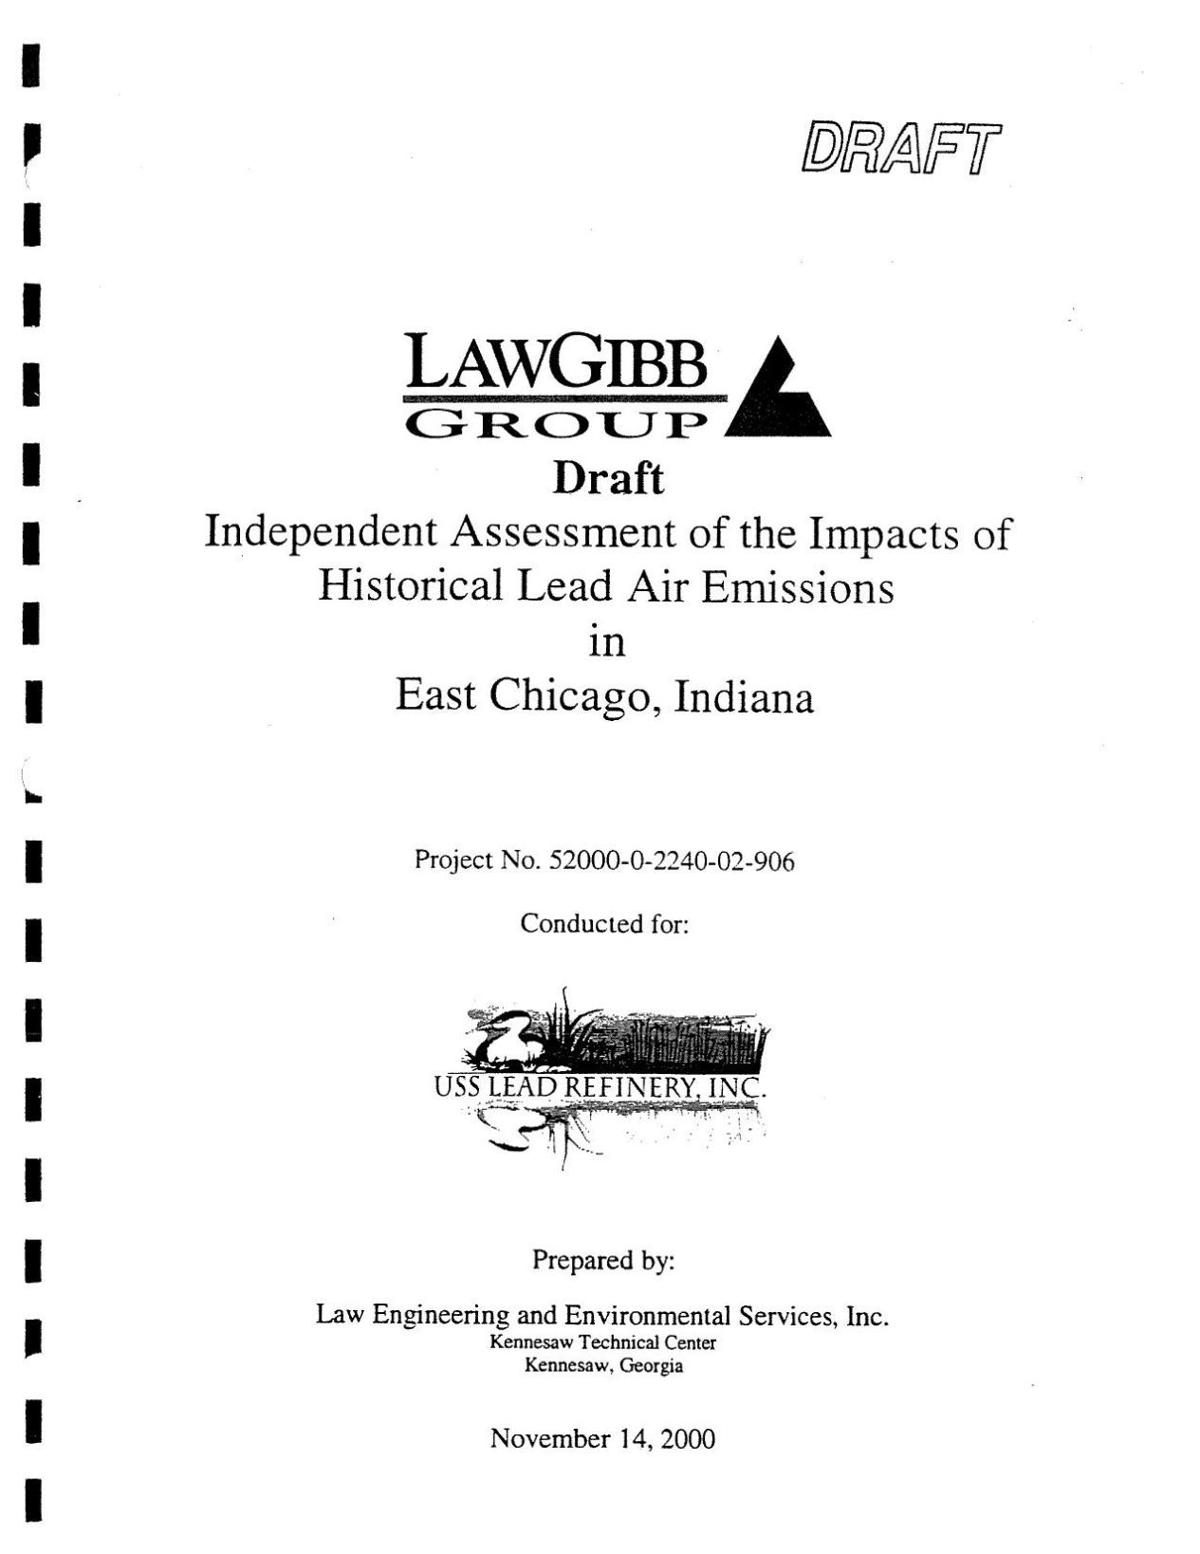 2000 LAW Engineering report